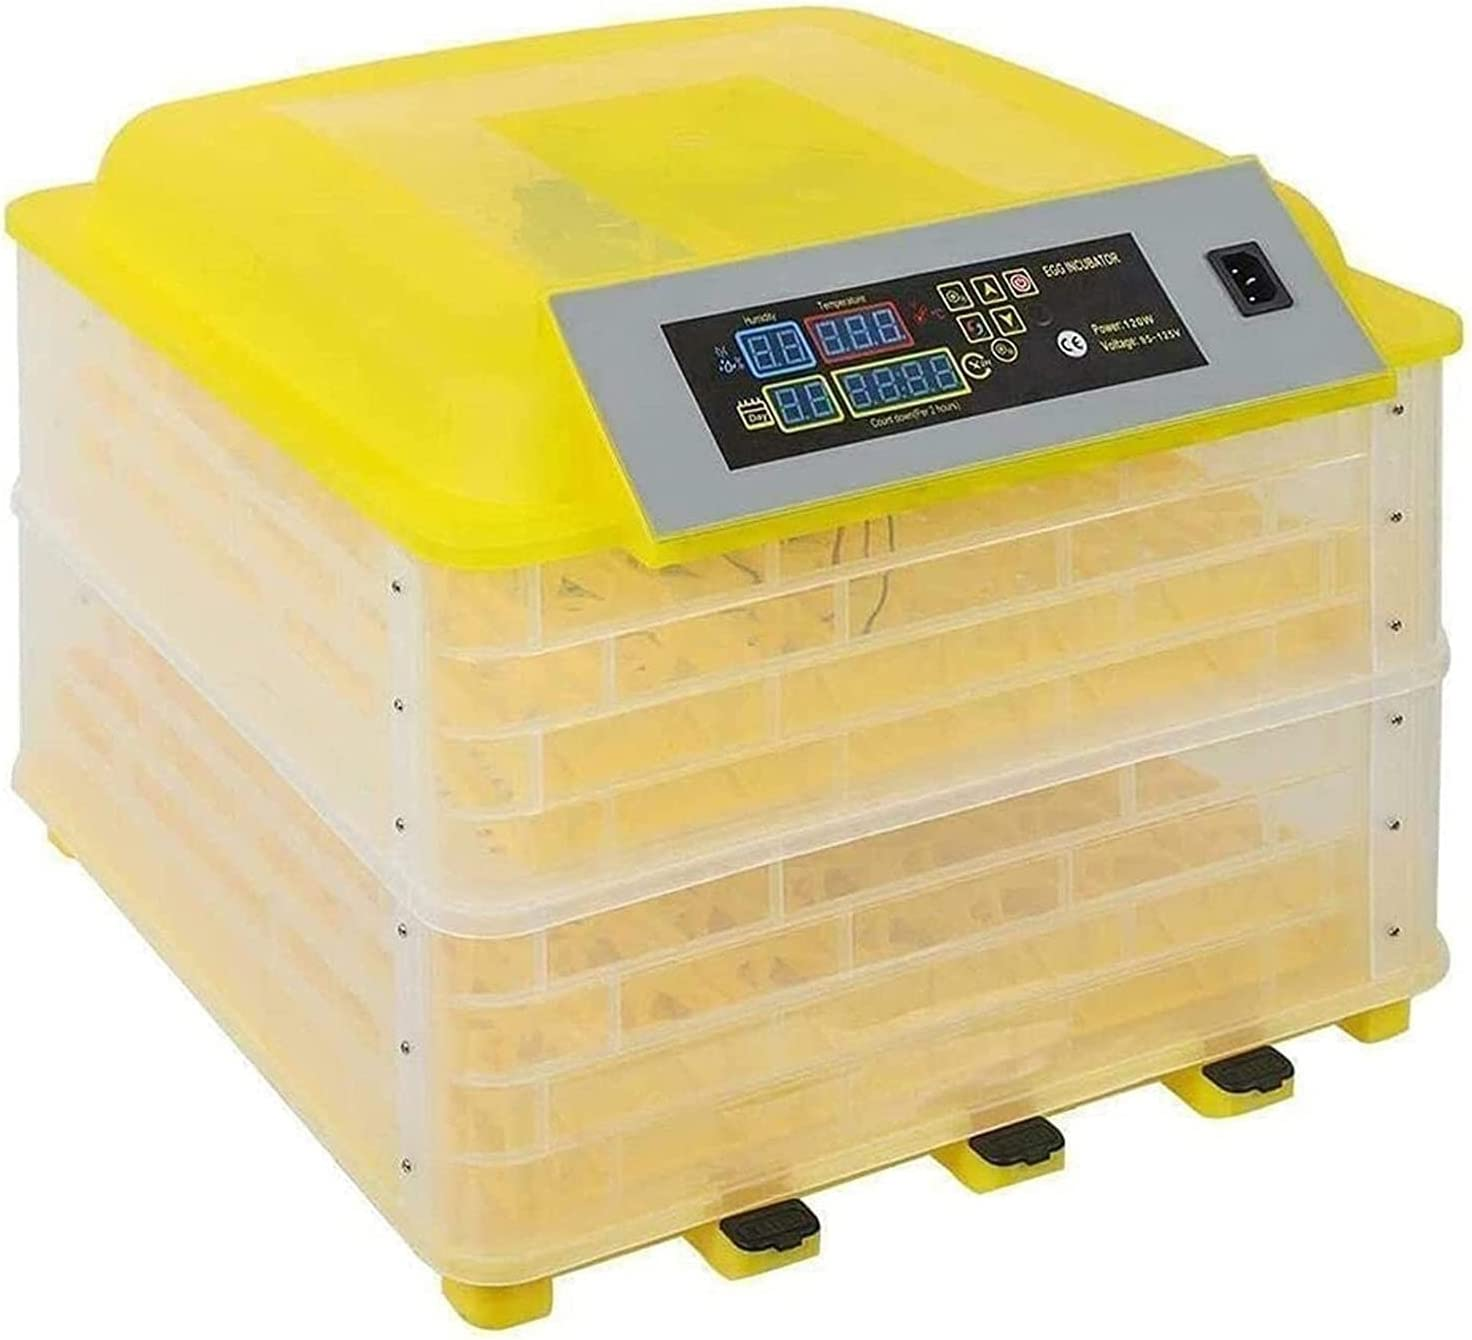 WENZHE Egg Incubator 112 Eggs Factory outlet Digital Fully Automatic Spasm price Poultry Ha